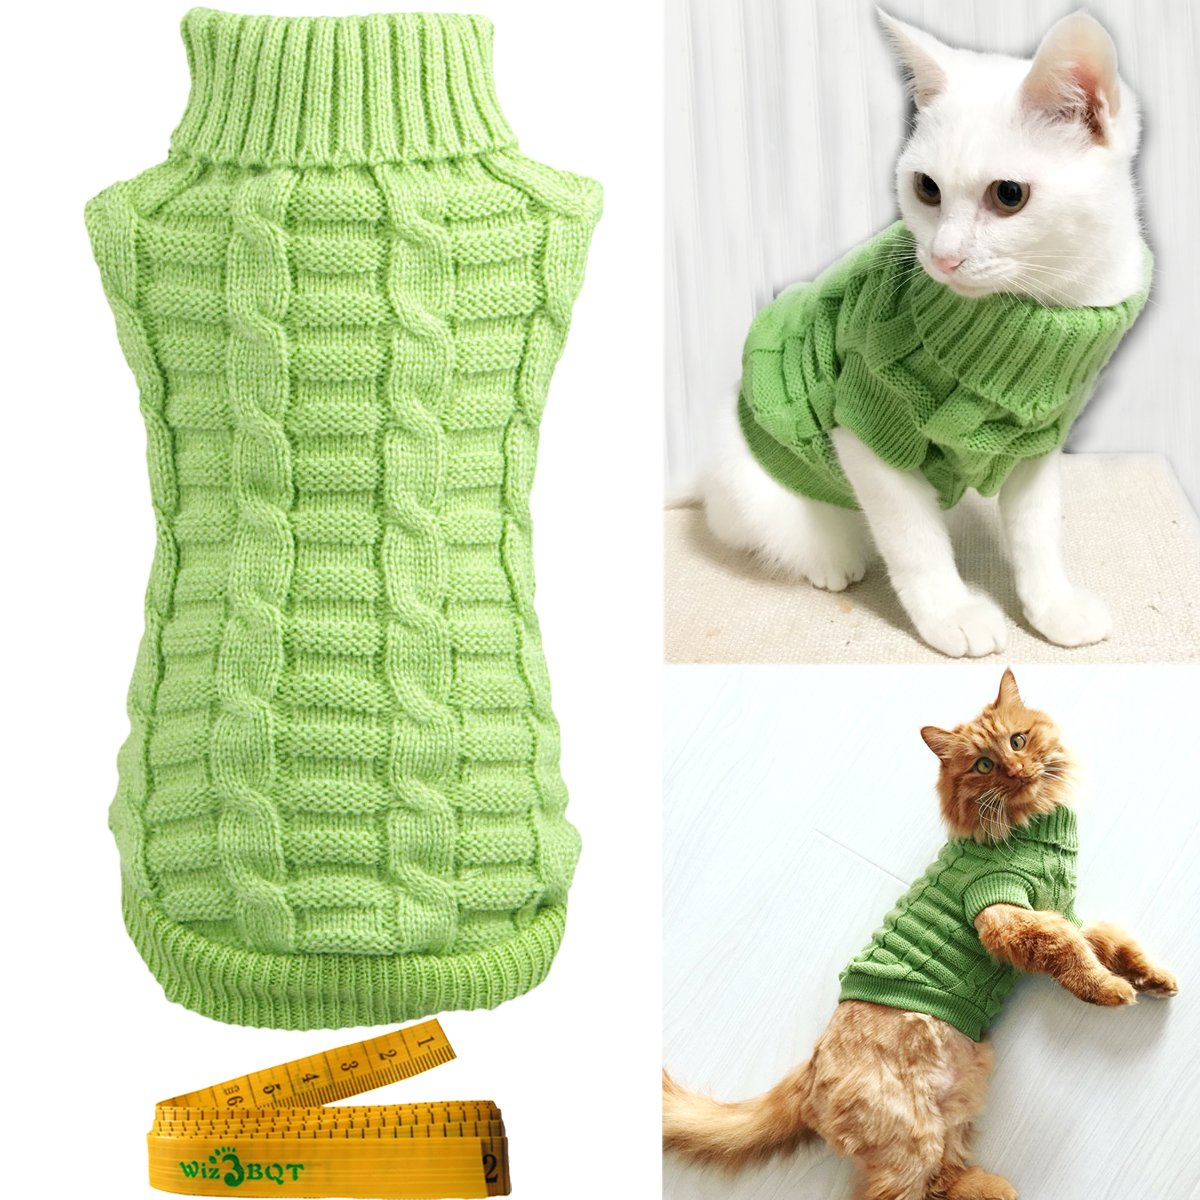 Wiz BBQT Knitted Braid Plait Turtleneck Sweater Knitwear Outerwear for Dogs & Cats